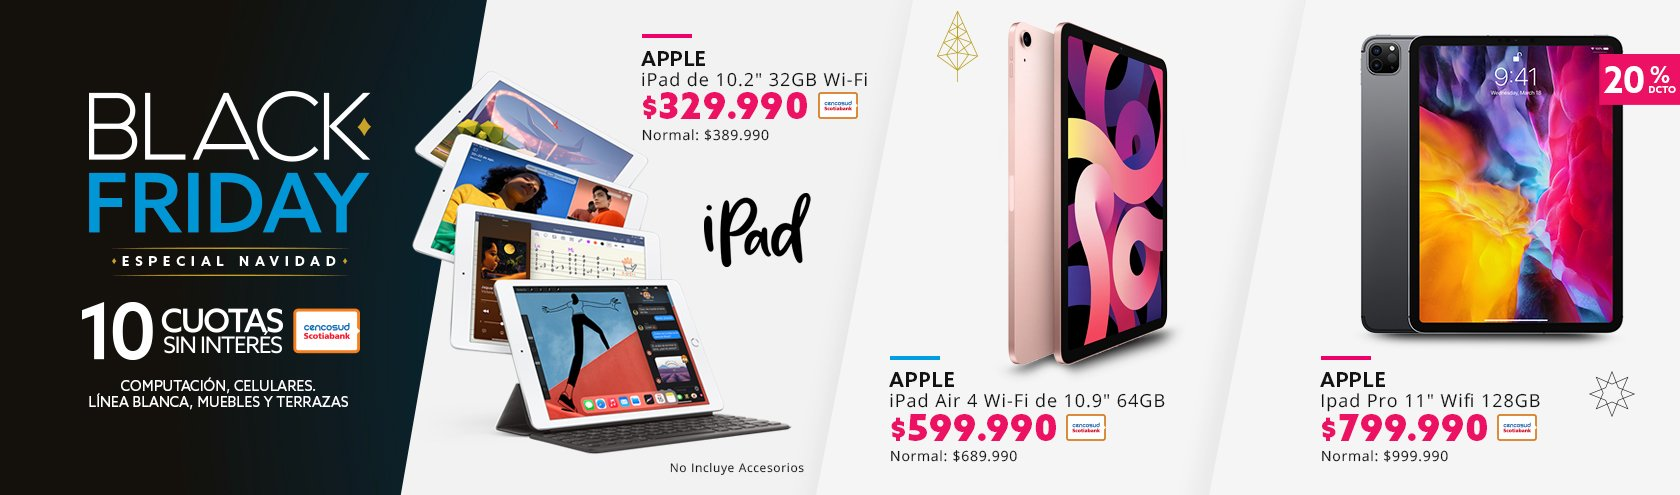 Descuentos en ipad apple